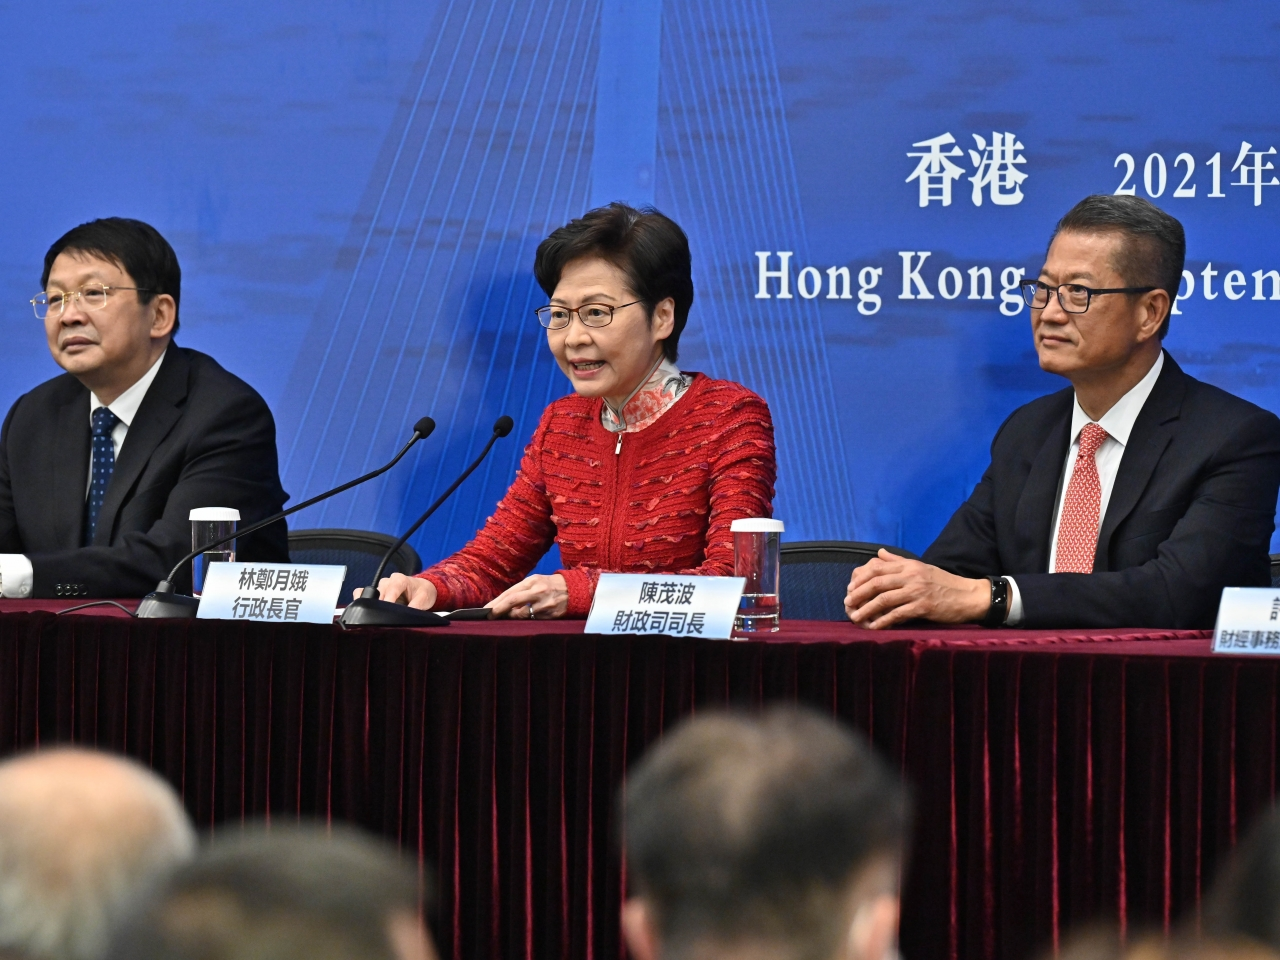 Chief Executive Carrie Lam officiated at the Wealth Management Connect's launch ceremony. Photo courtesy of Information Services Department